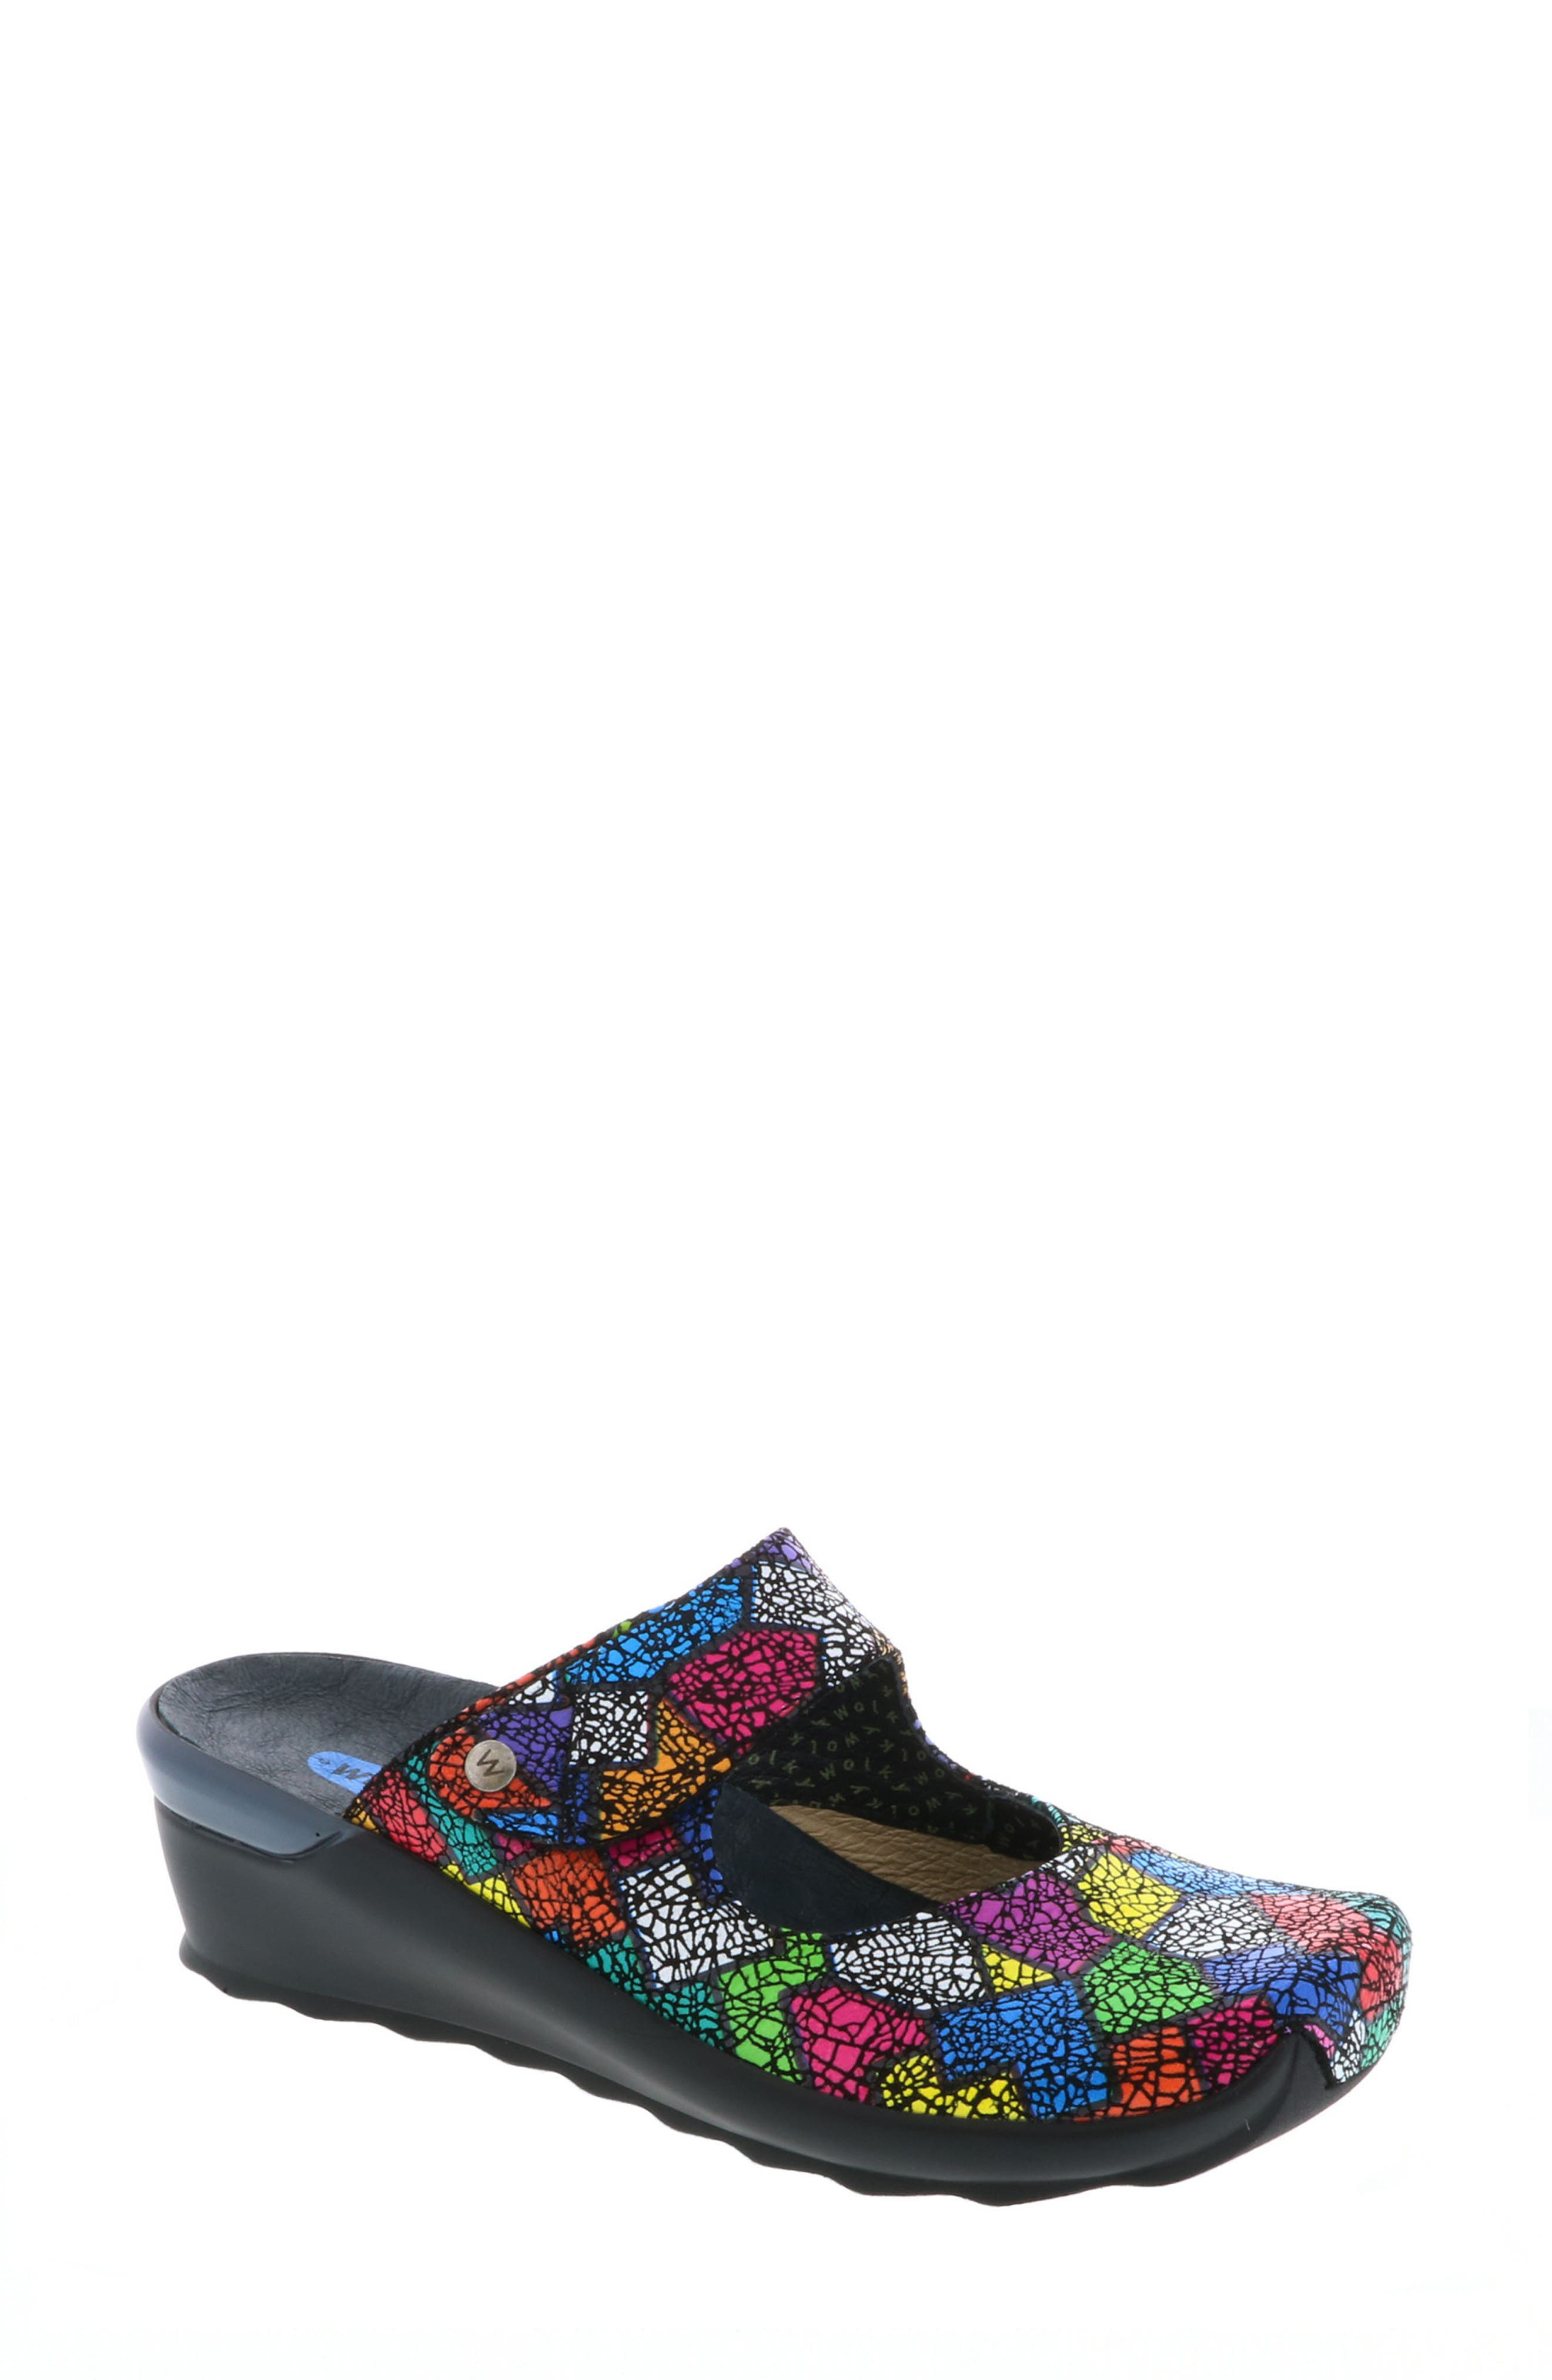 'Up' Mary Jane Clog,                         Main,                         color, Multi Picasso